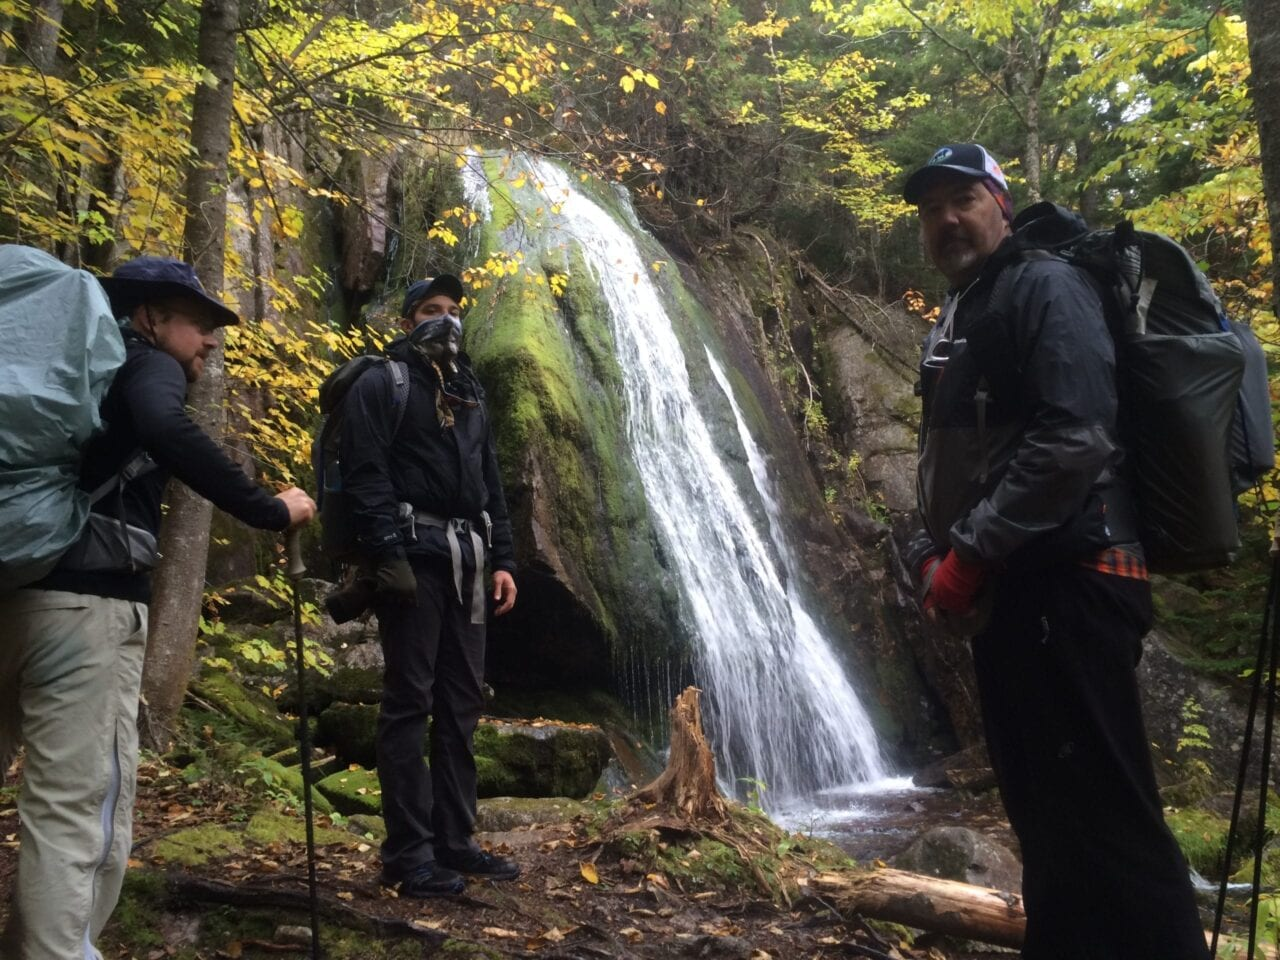 Three hikers stand in front of an exquisite waterfall in a forest.